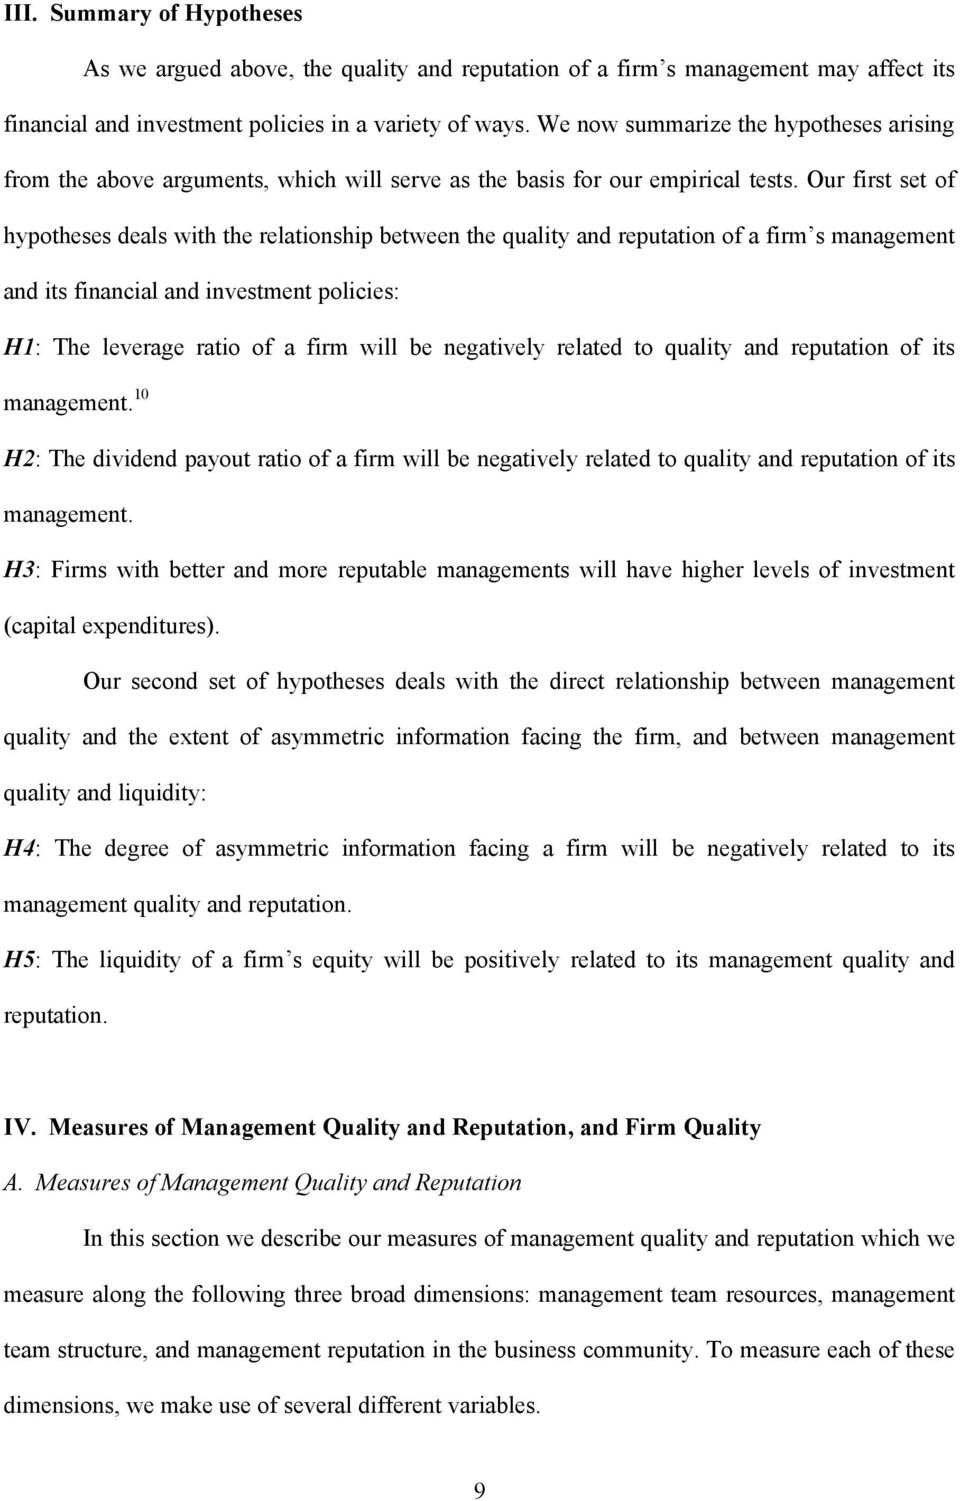 Our frst set of hypotheses deals wth the relatonshp between the qualty and reputaton of a frm s management and ts fnancal and nvestment polces: H1: The leverage rato of a frm wll be negatvely related